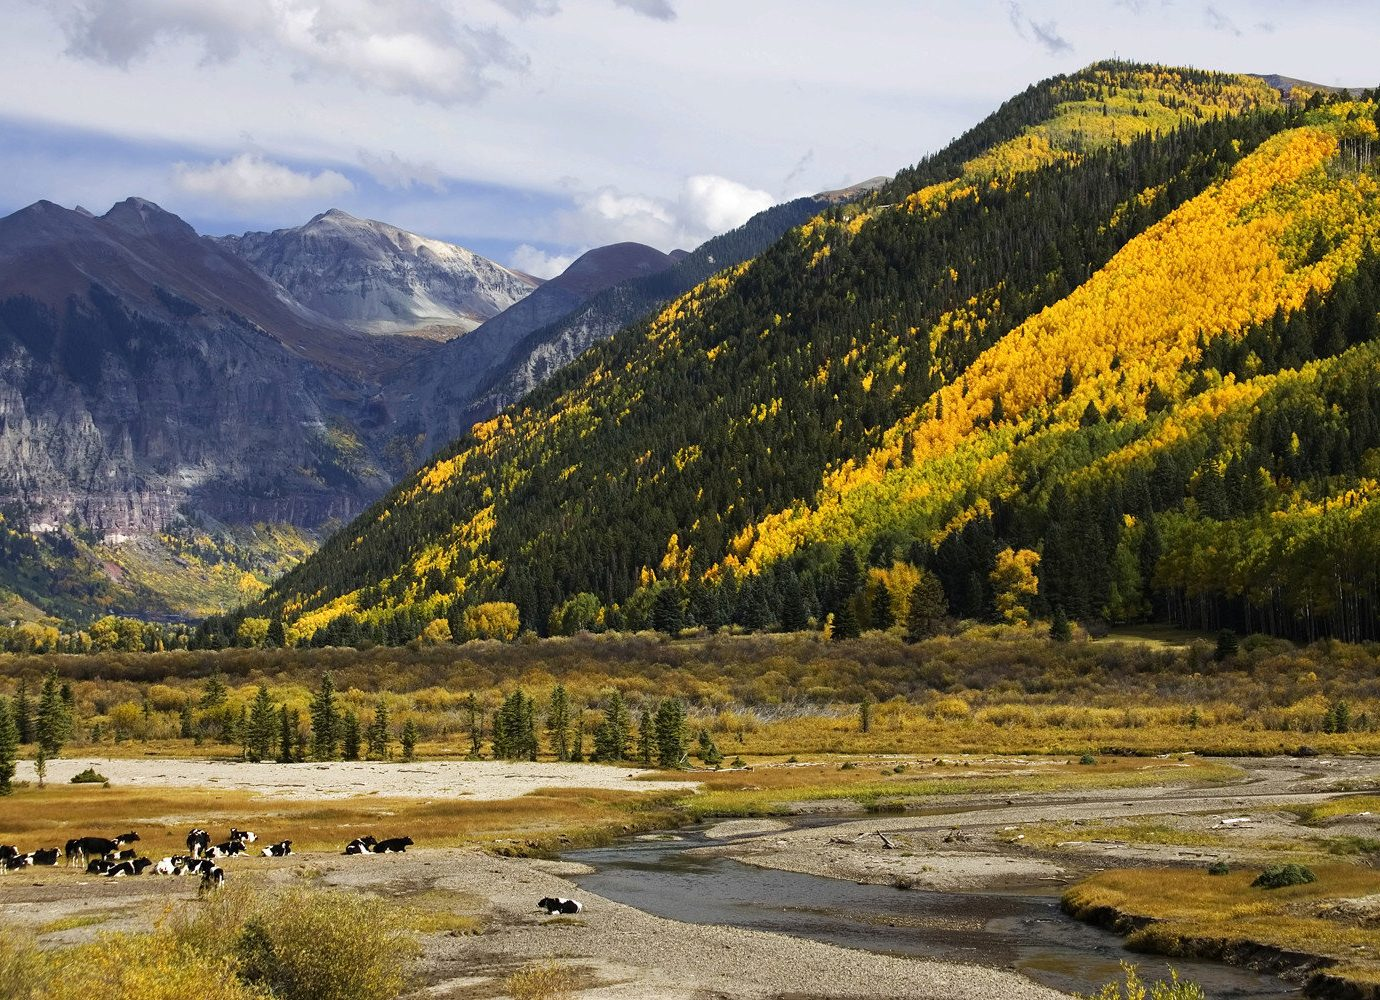 Foliage on mountains in Telluride